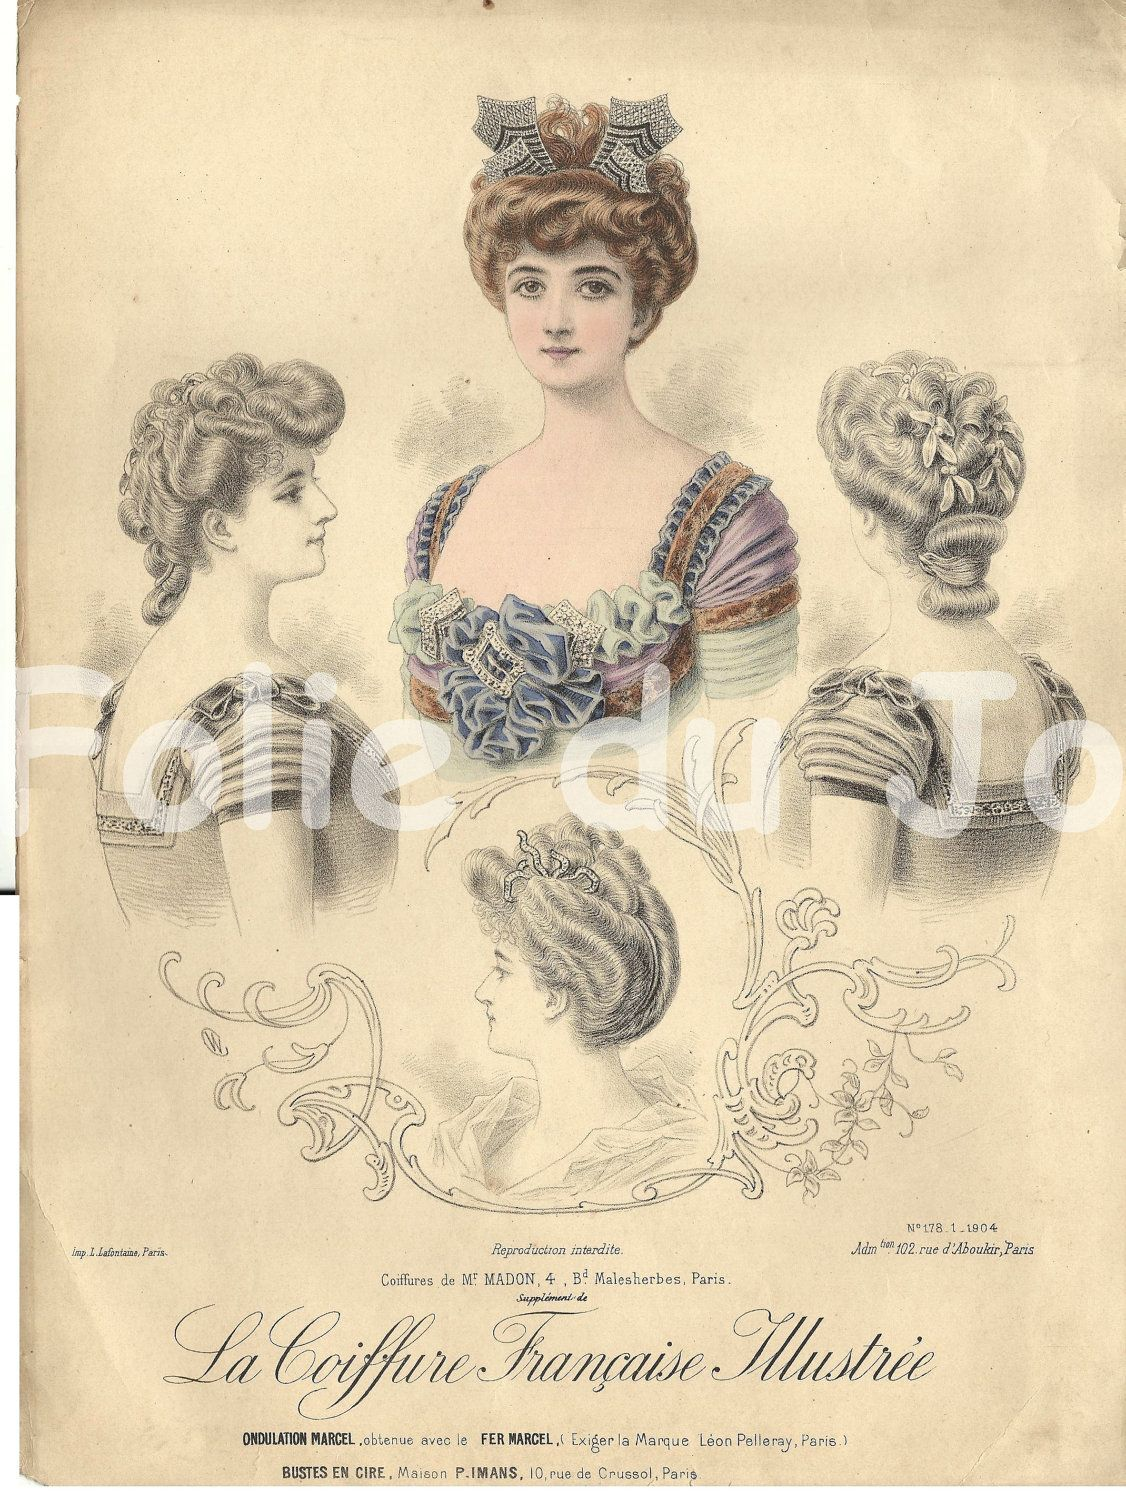 Antique French edwardian hairstyles plate 1900s - La Coiffure Francaise Illustree 11 x 14. $24.00, via Etsy.